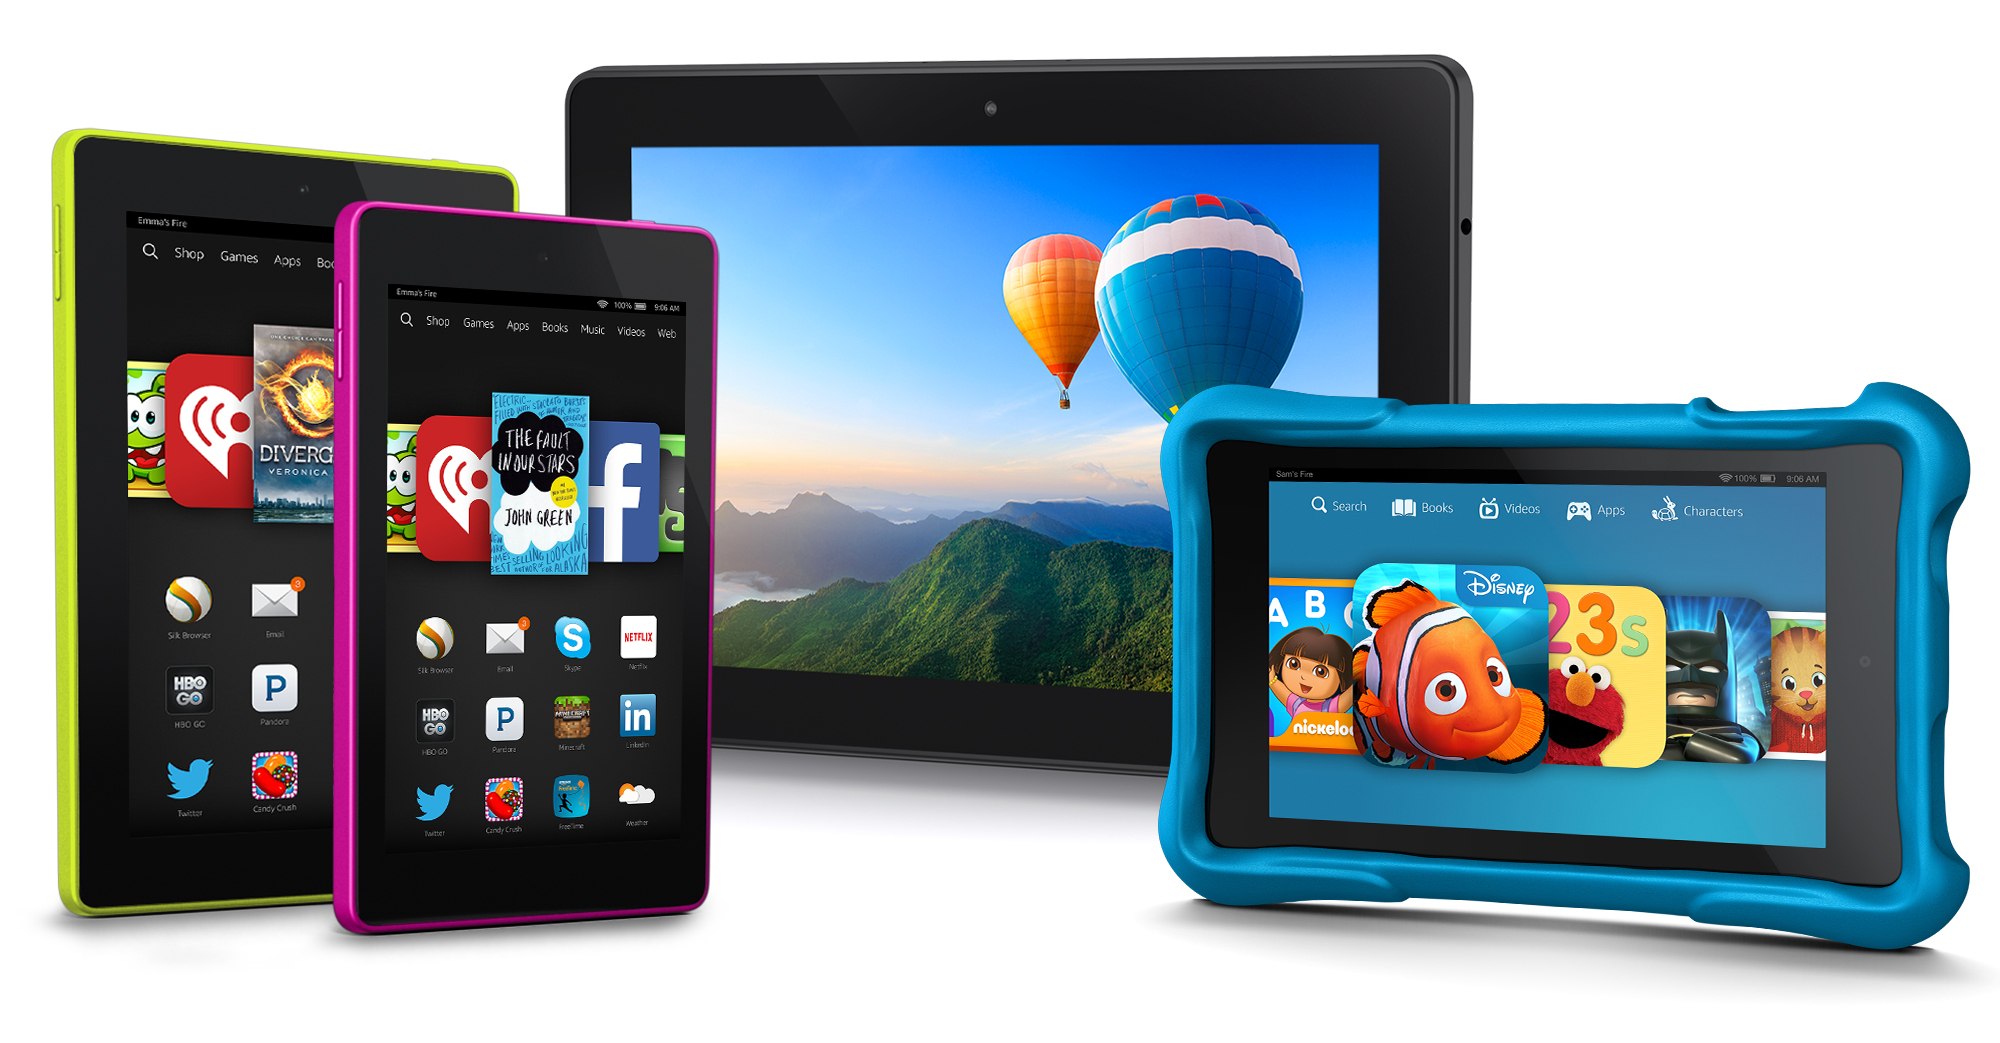 Amazon Launches Kid-friendly Kindle Fire Tablet